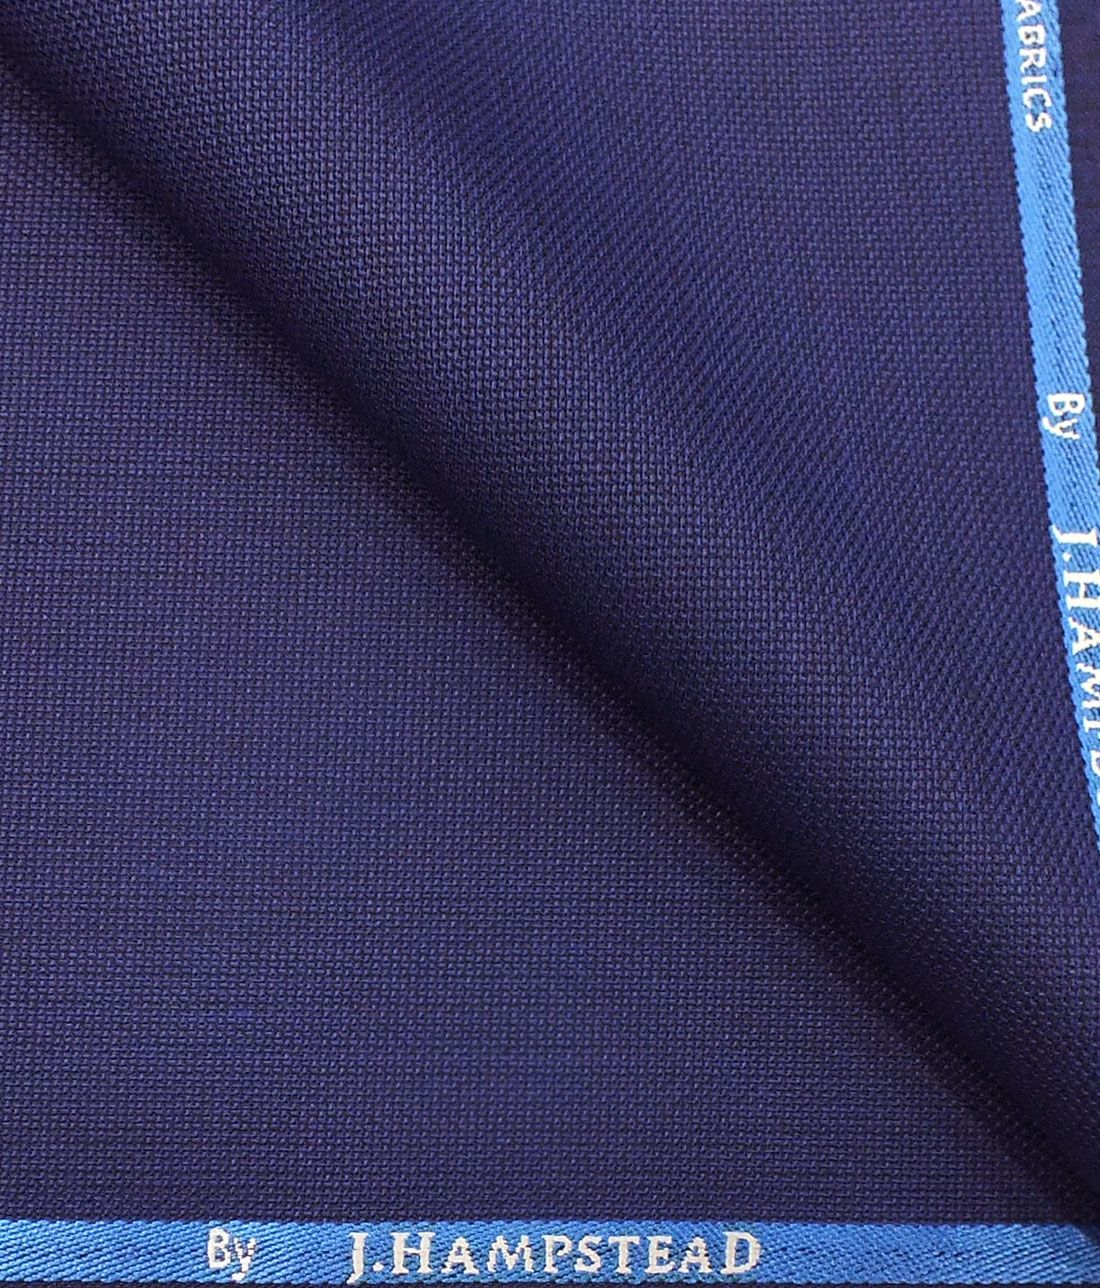 cf67d95a12c J.Hampstead by Siyaram s Men s Bright Royal Blue Structured Poly Viscose Trouser  Fabric (Unstitched - 1.25 Mtr)